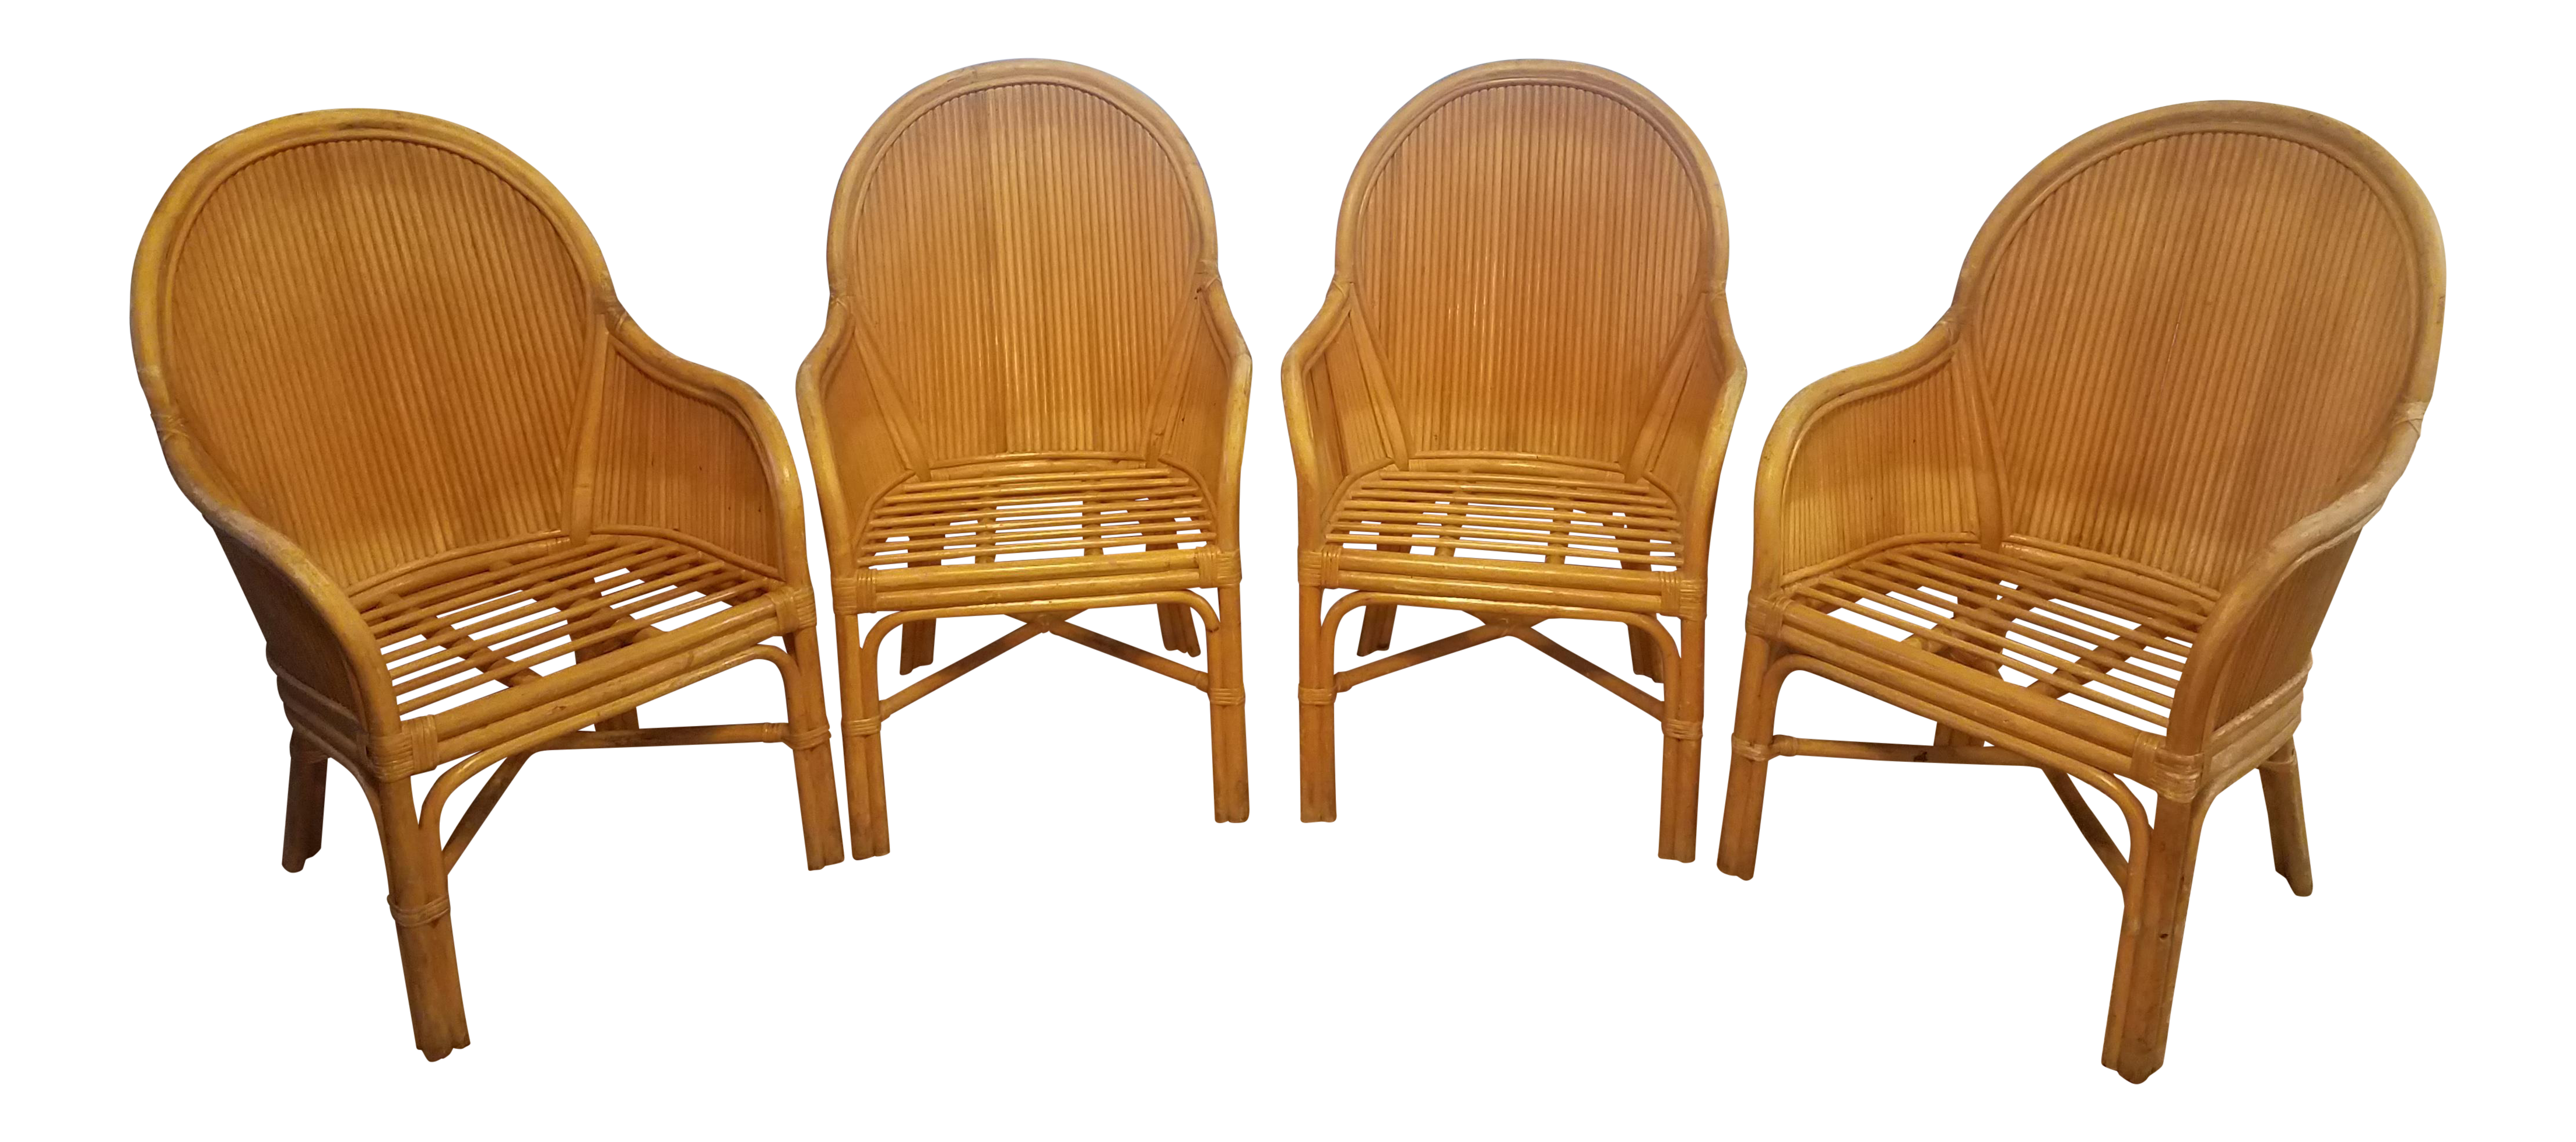 Palm Beach Pencil Reed Rattan Dining Chairs - Set of 4 - Image 1 of 10  sc 1 st  Chairish & Palm Beach Pencil Reed Rattan Dining Chairs - Set of 4 | Chairish